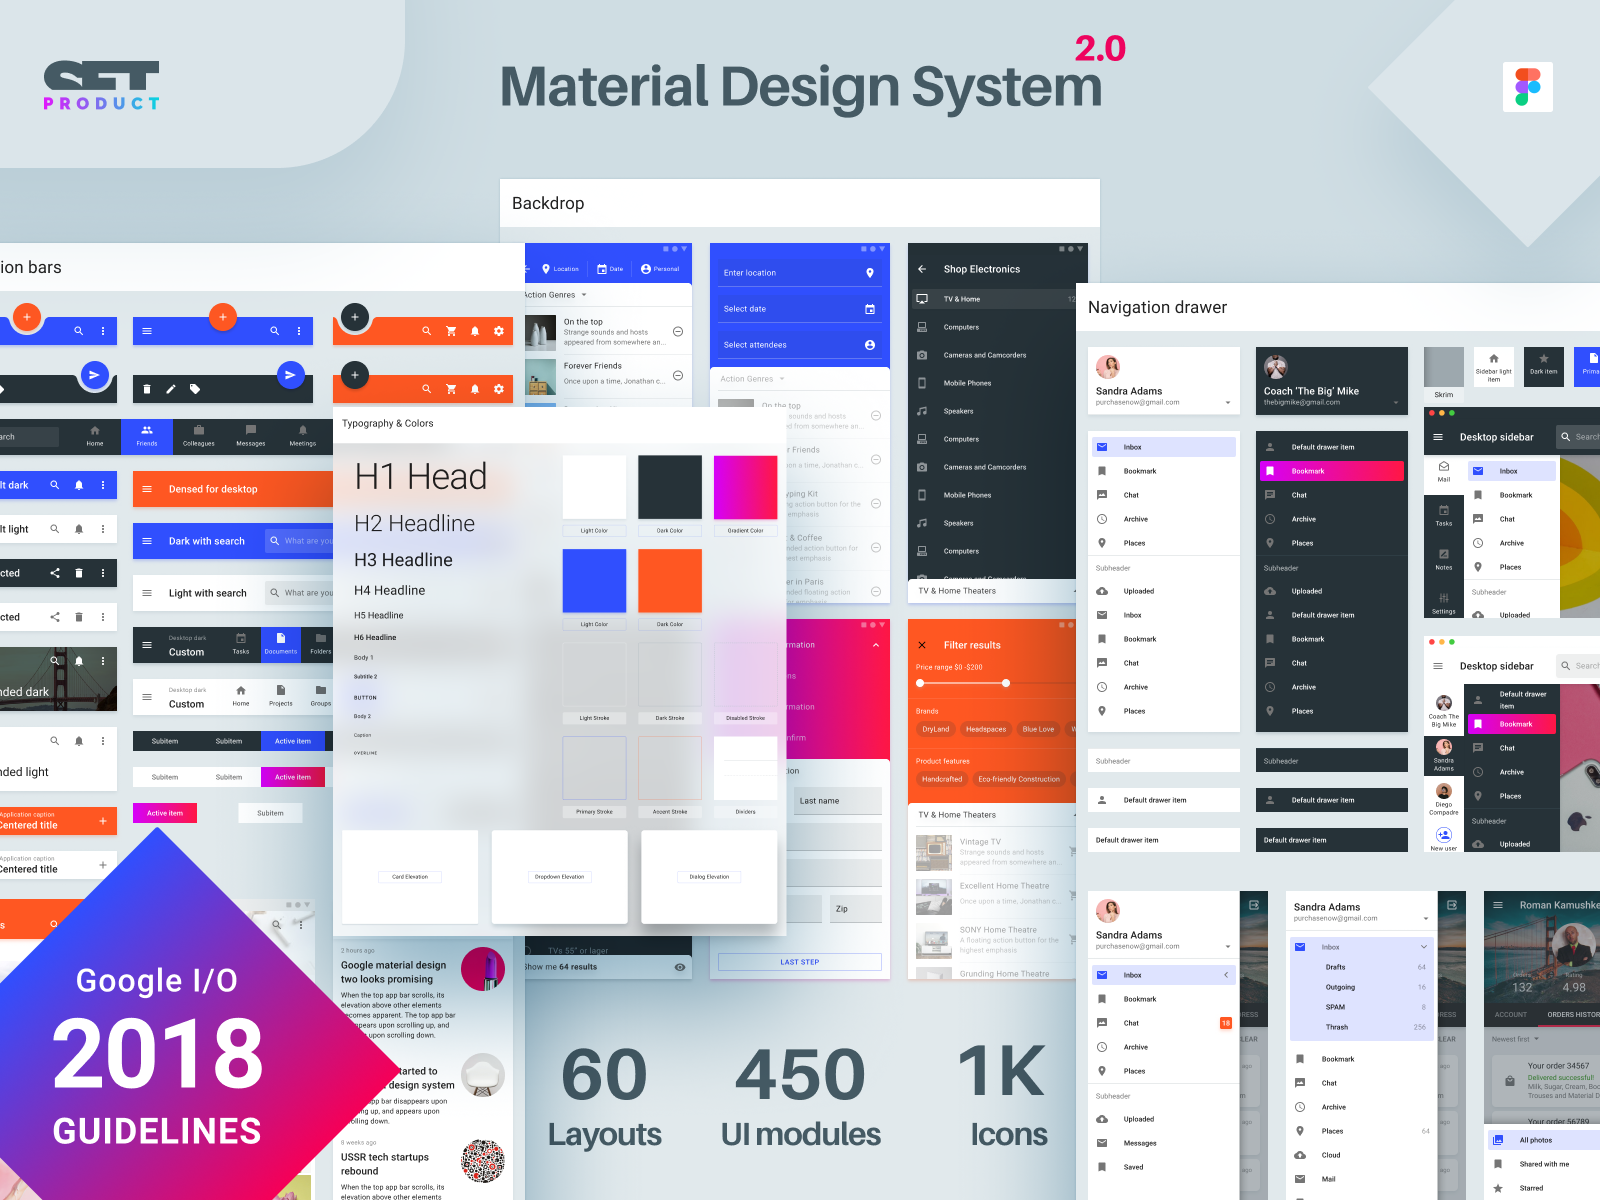 I updated my Figma design system with recent material 2018